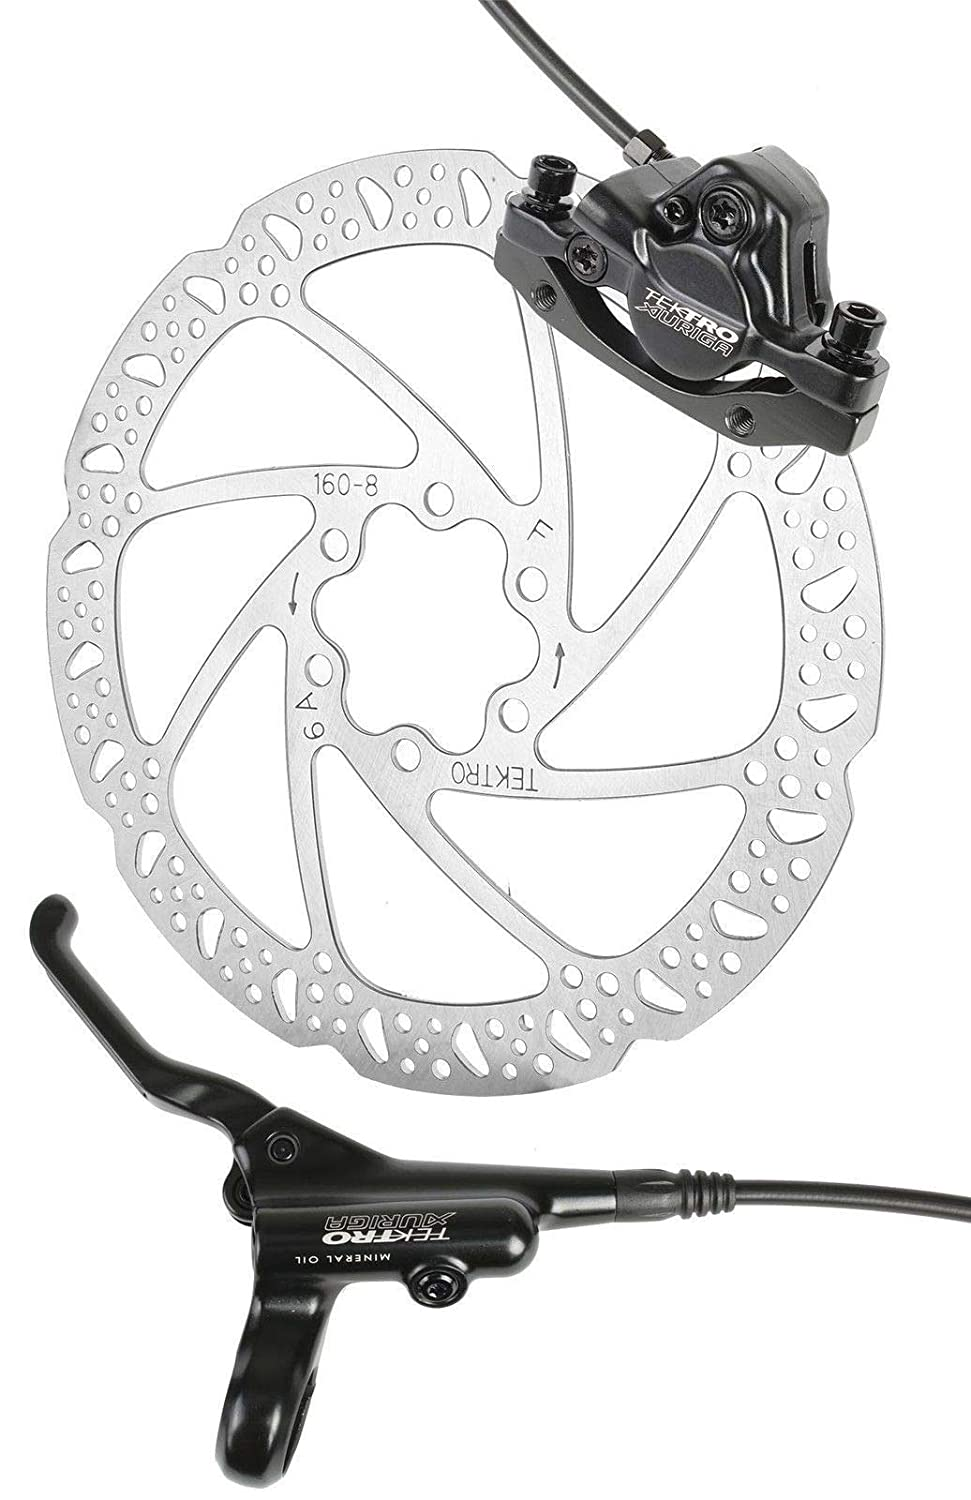 Tektro HD-M290 Hydraulic Disc Brake 160mm Rotor